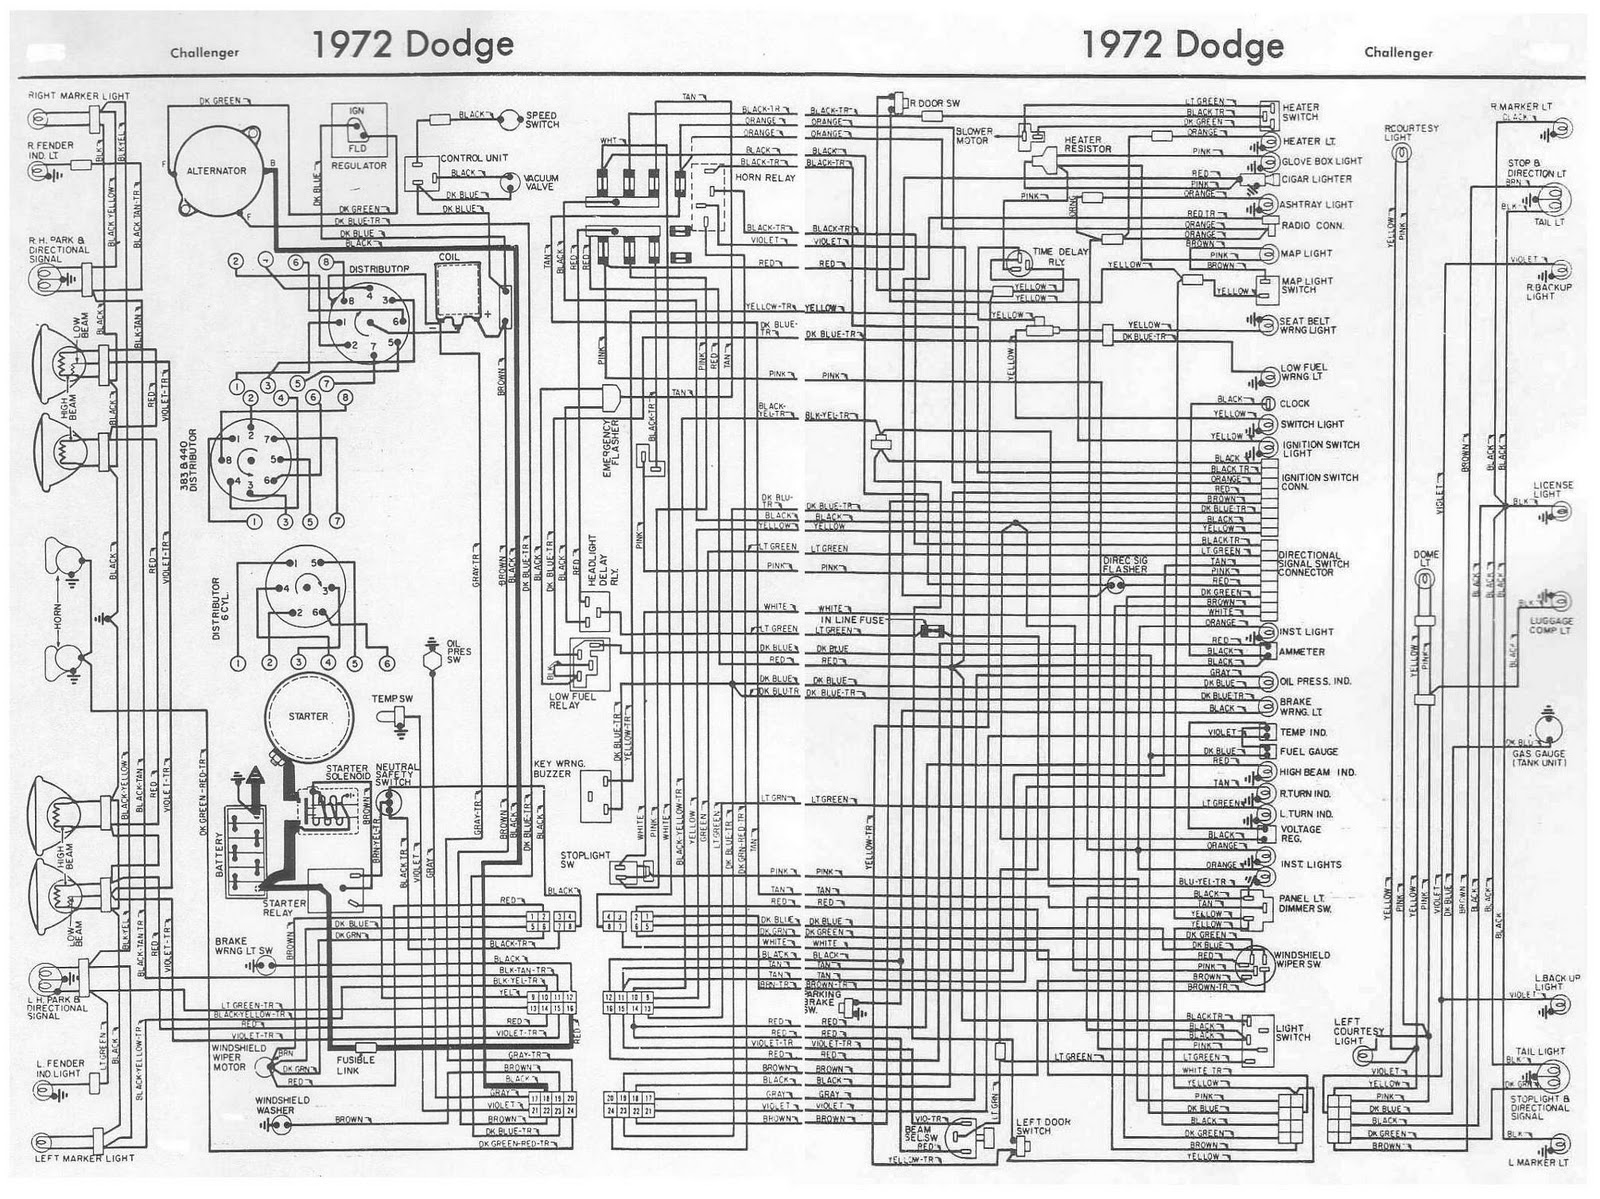 Dodge+Challenger+1972+Complete+Wiring+Diagram dodge challenger 1972 complete wiring diagram all about wiring 1972 mustang wiring schematic at bakdesigns.co